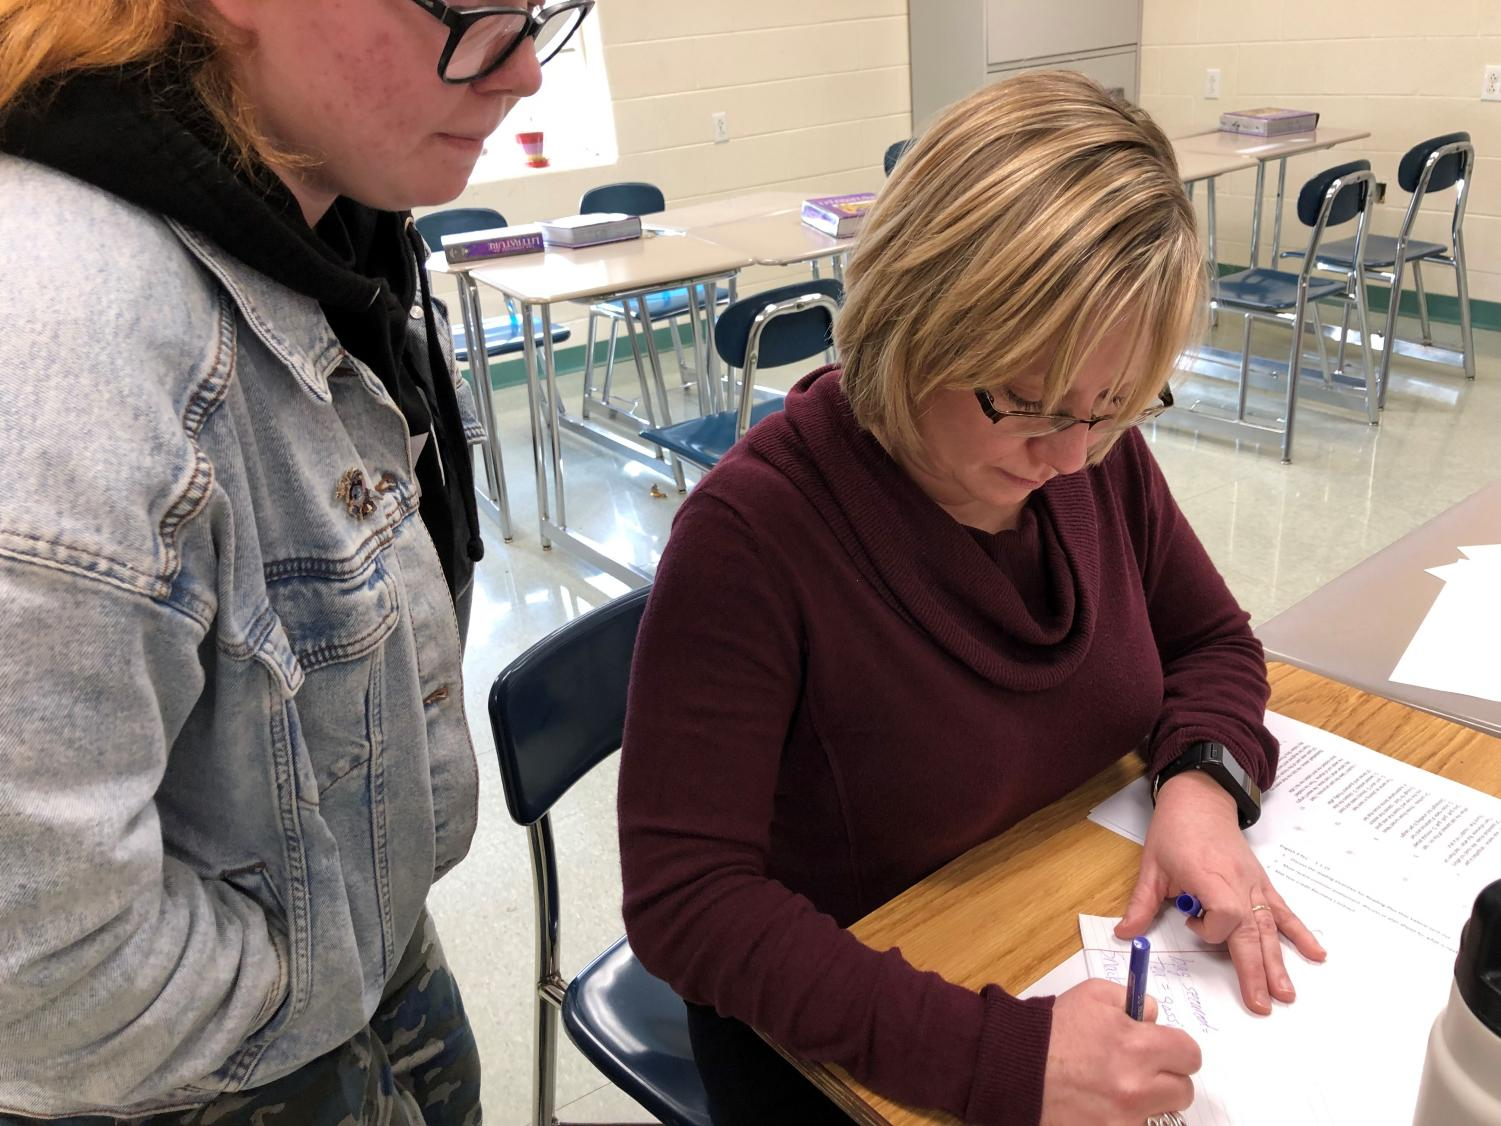 Senior Adri Portman helps educate English teacher Annette Manlief on the latest phrases used in casual conversations.   Manlief jotted down several phrases and planned to start using them when she spoke with students.